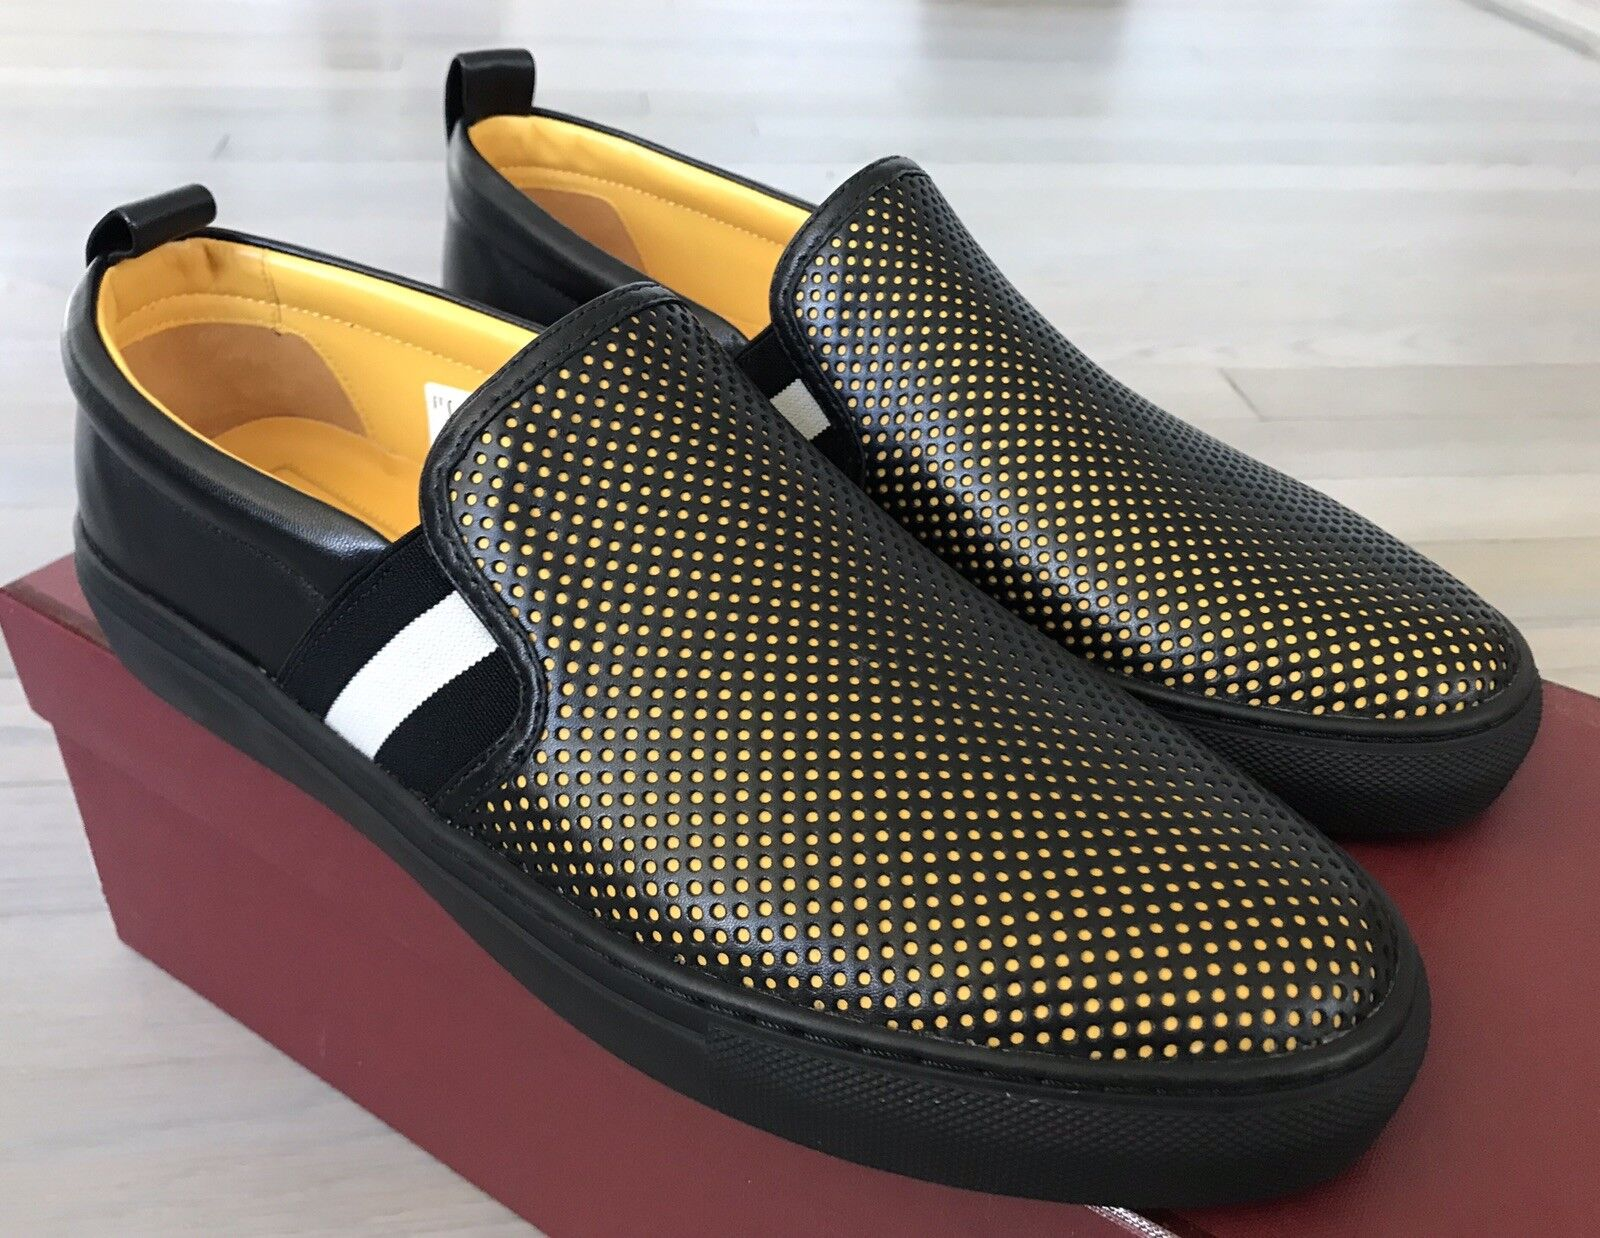 550  Bally Herald FO 00 nero Perforated Leather Slip on scarpe Dimensione US 10